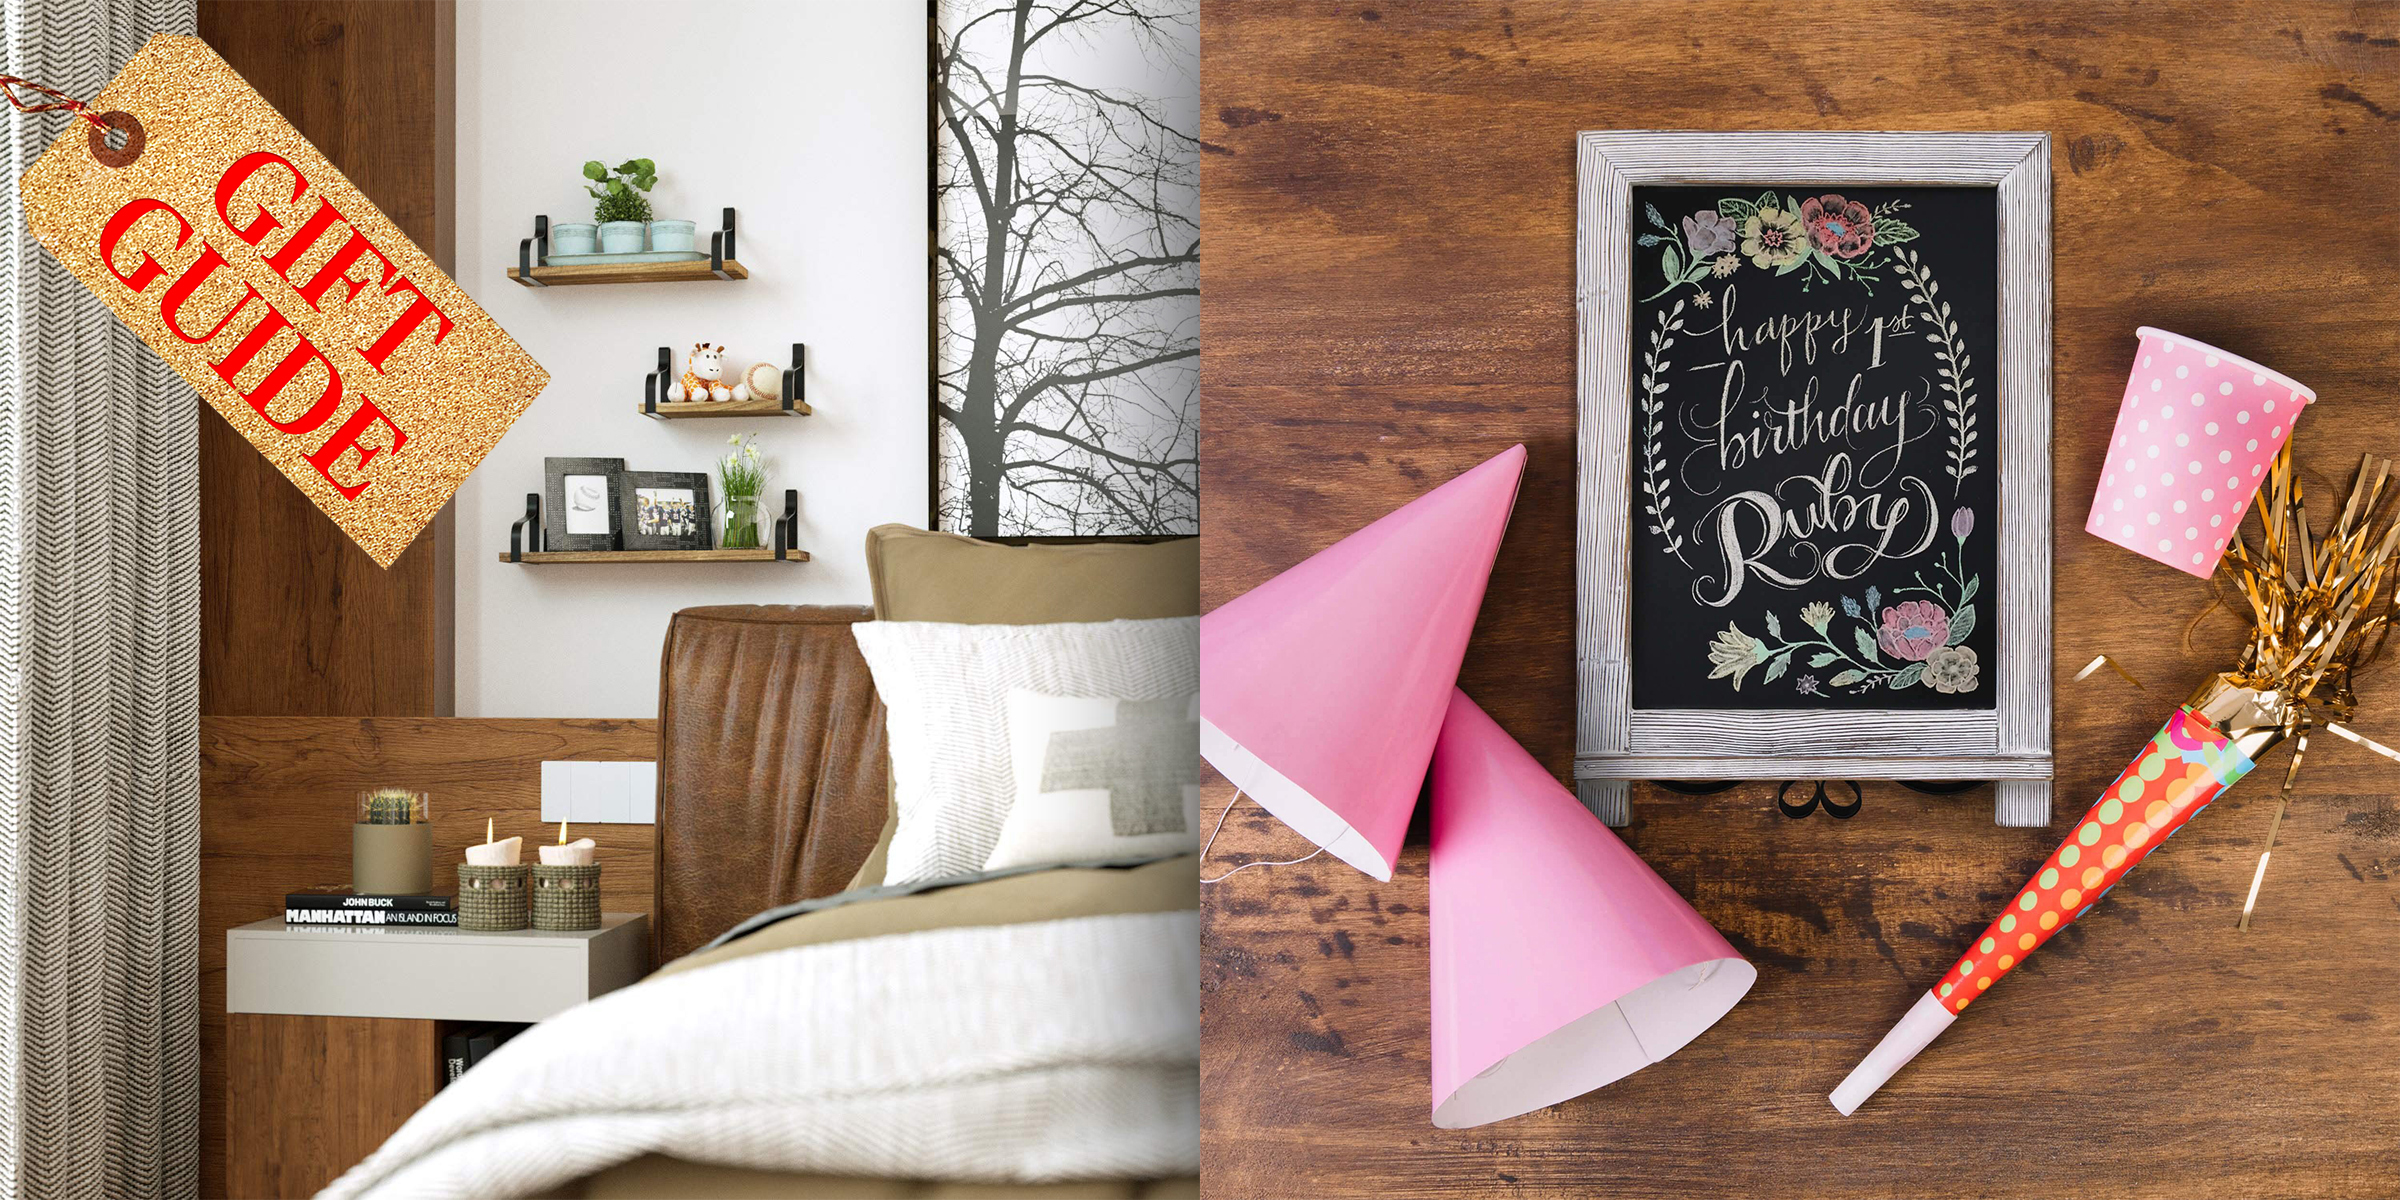 22 Best Home Decor Gifts 2019